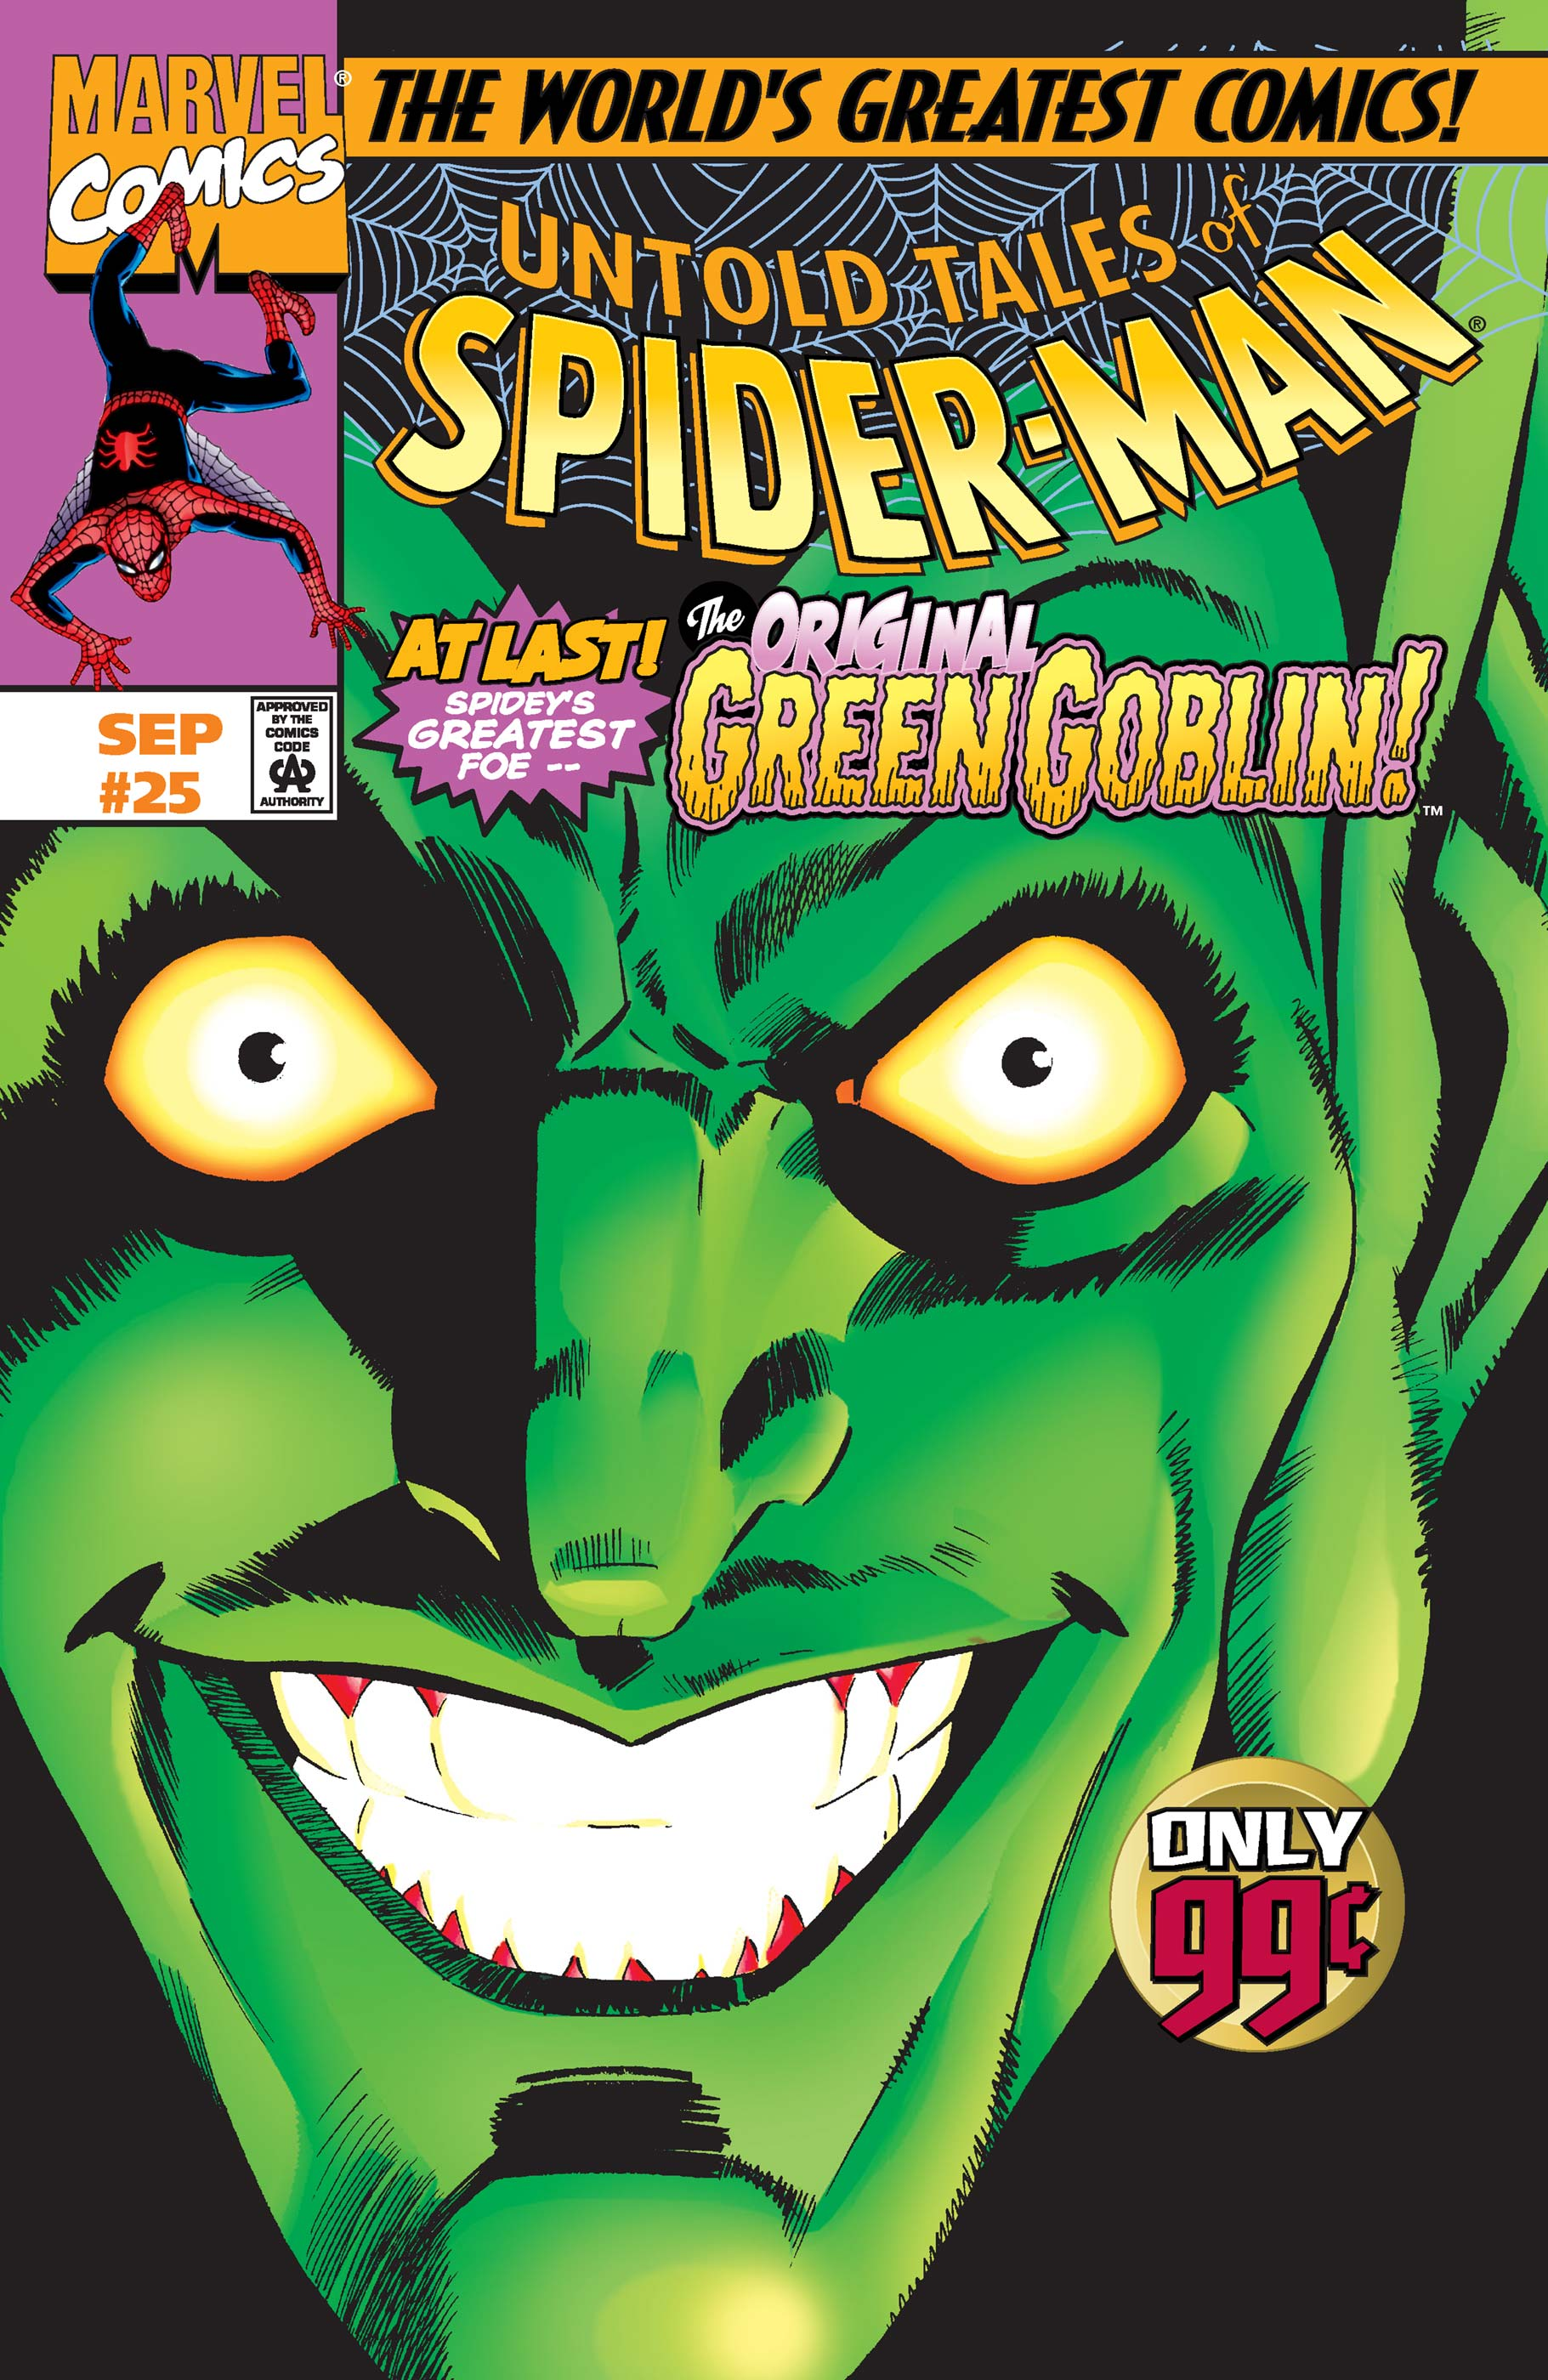 Untold Tales of Spider-Man (1995) #25